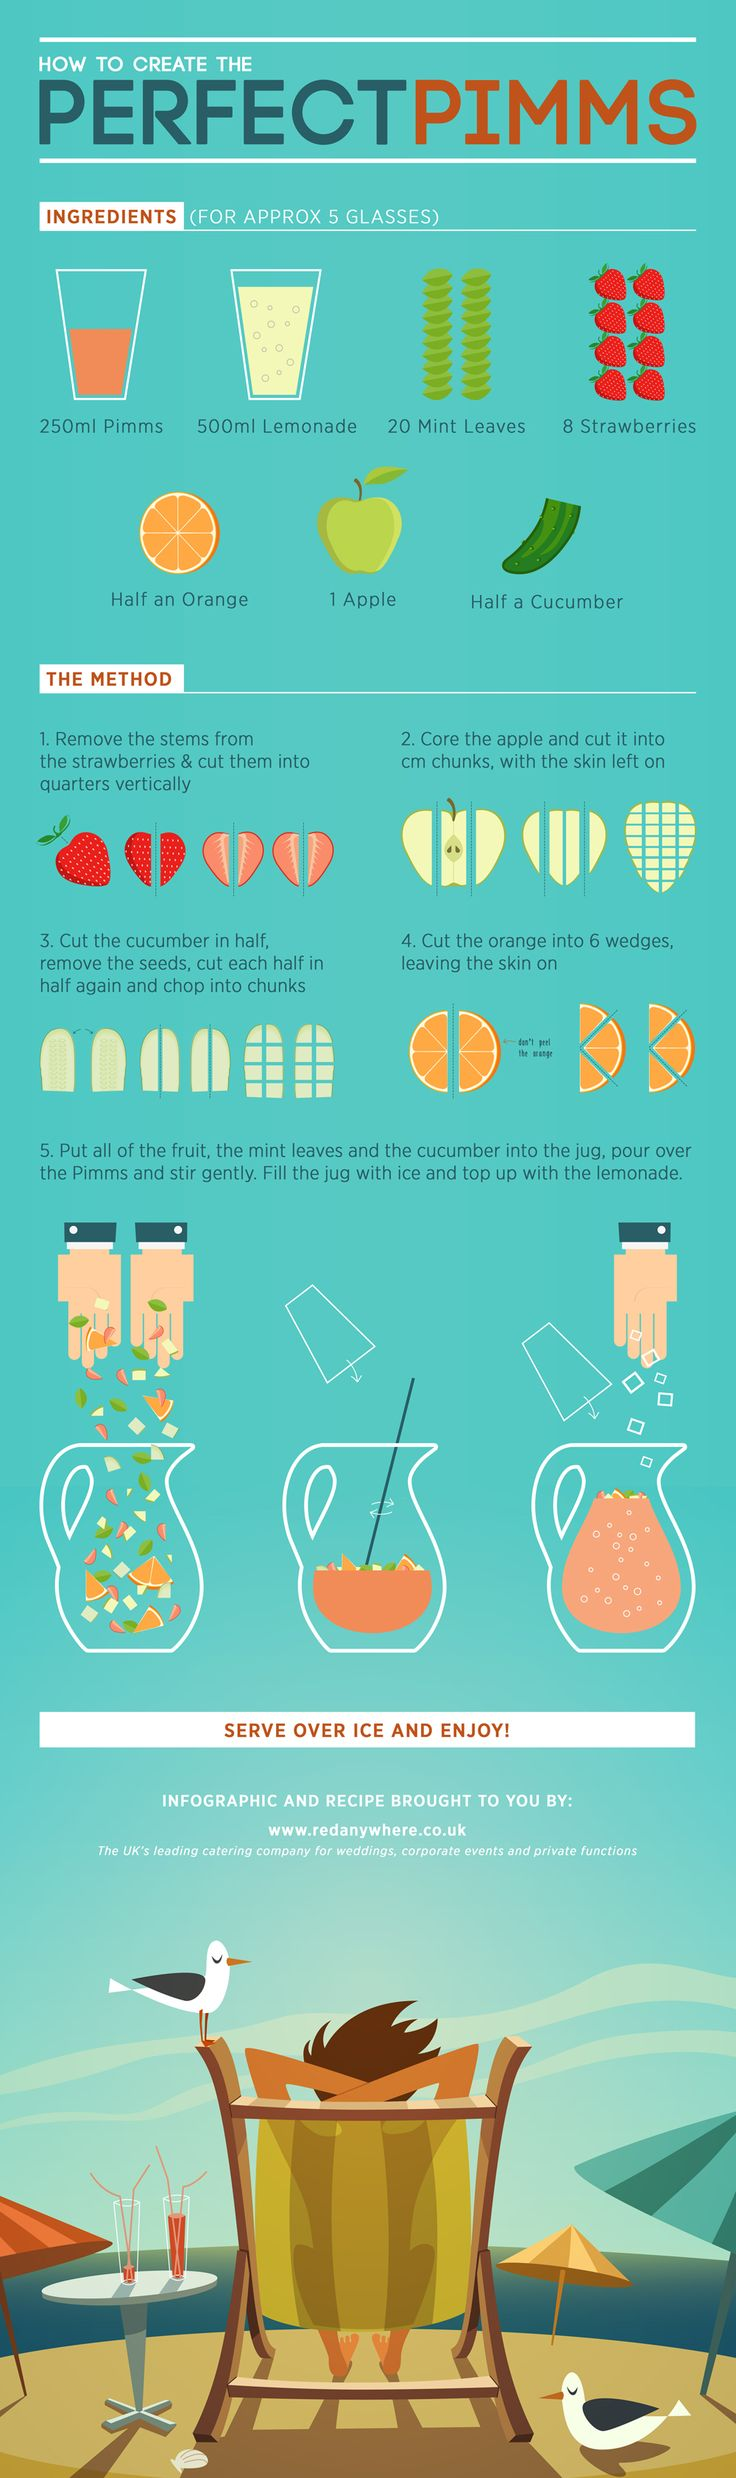 How To Create The Perfect #Pimms - Red Anywhere.